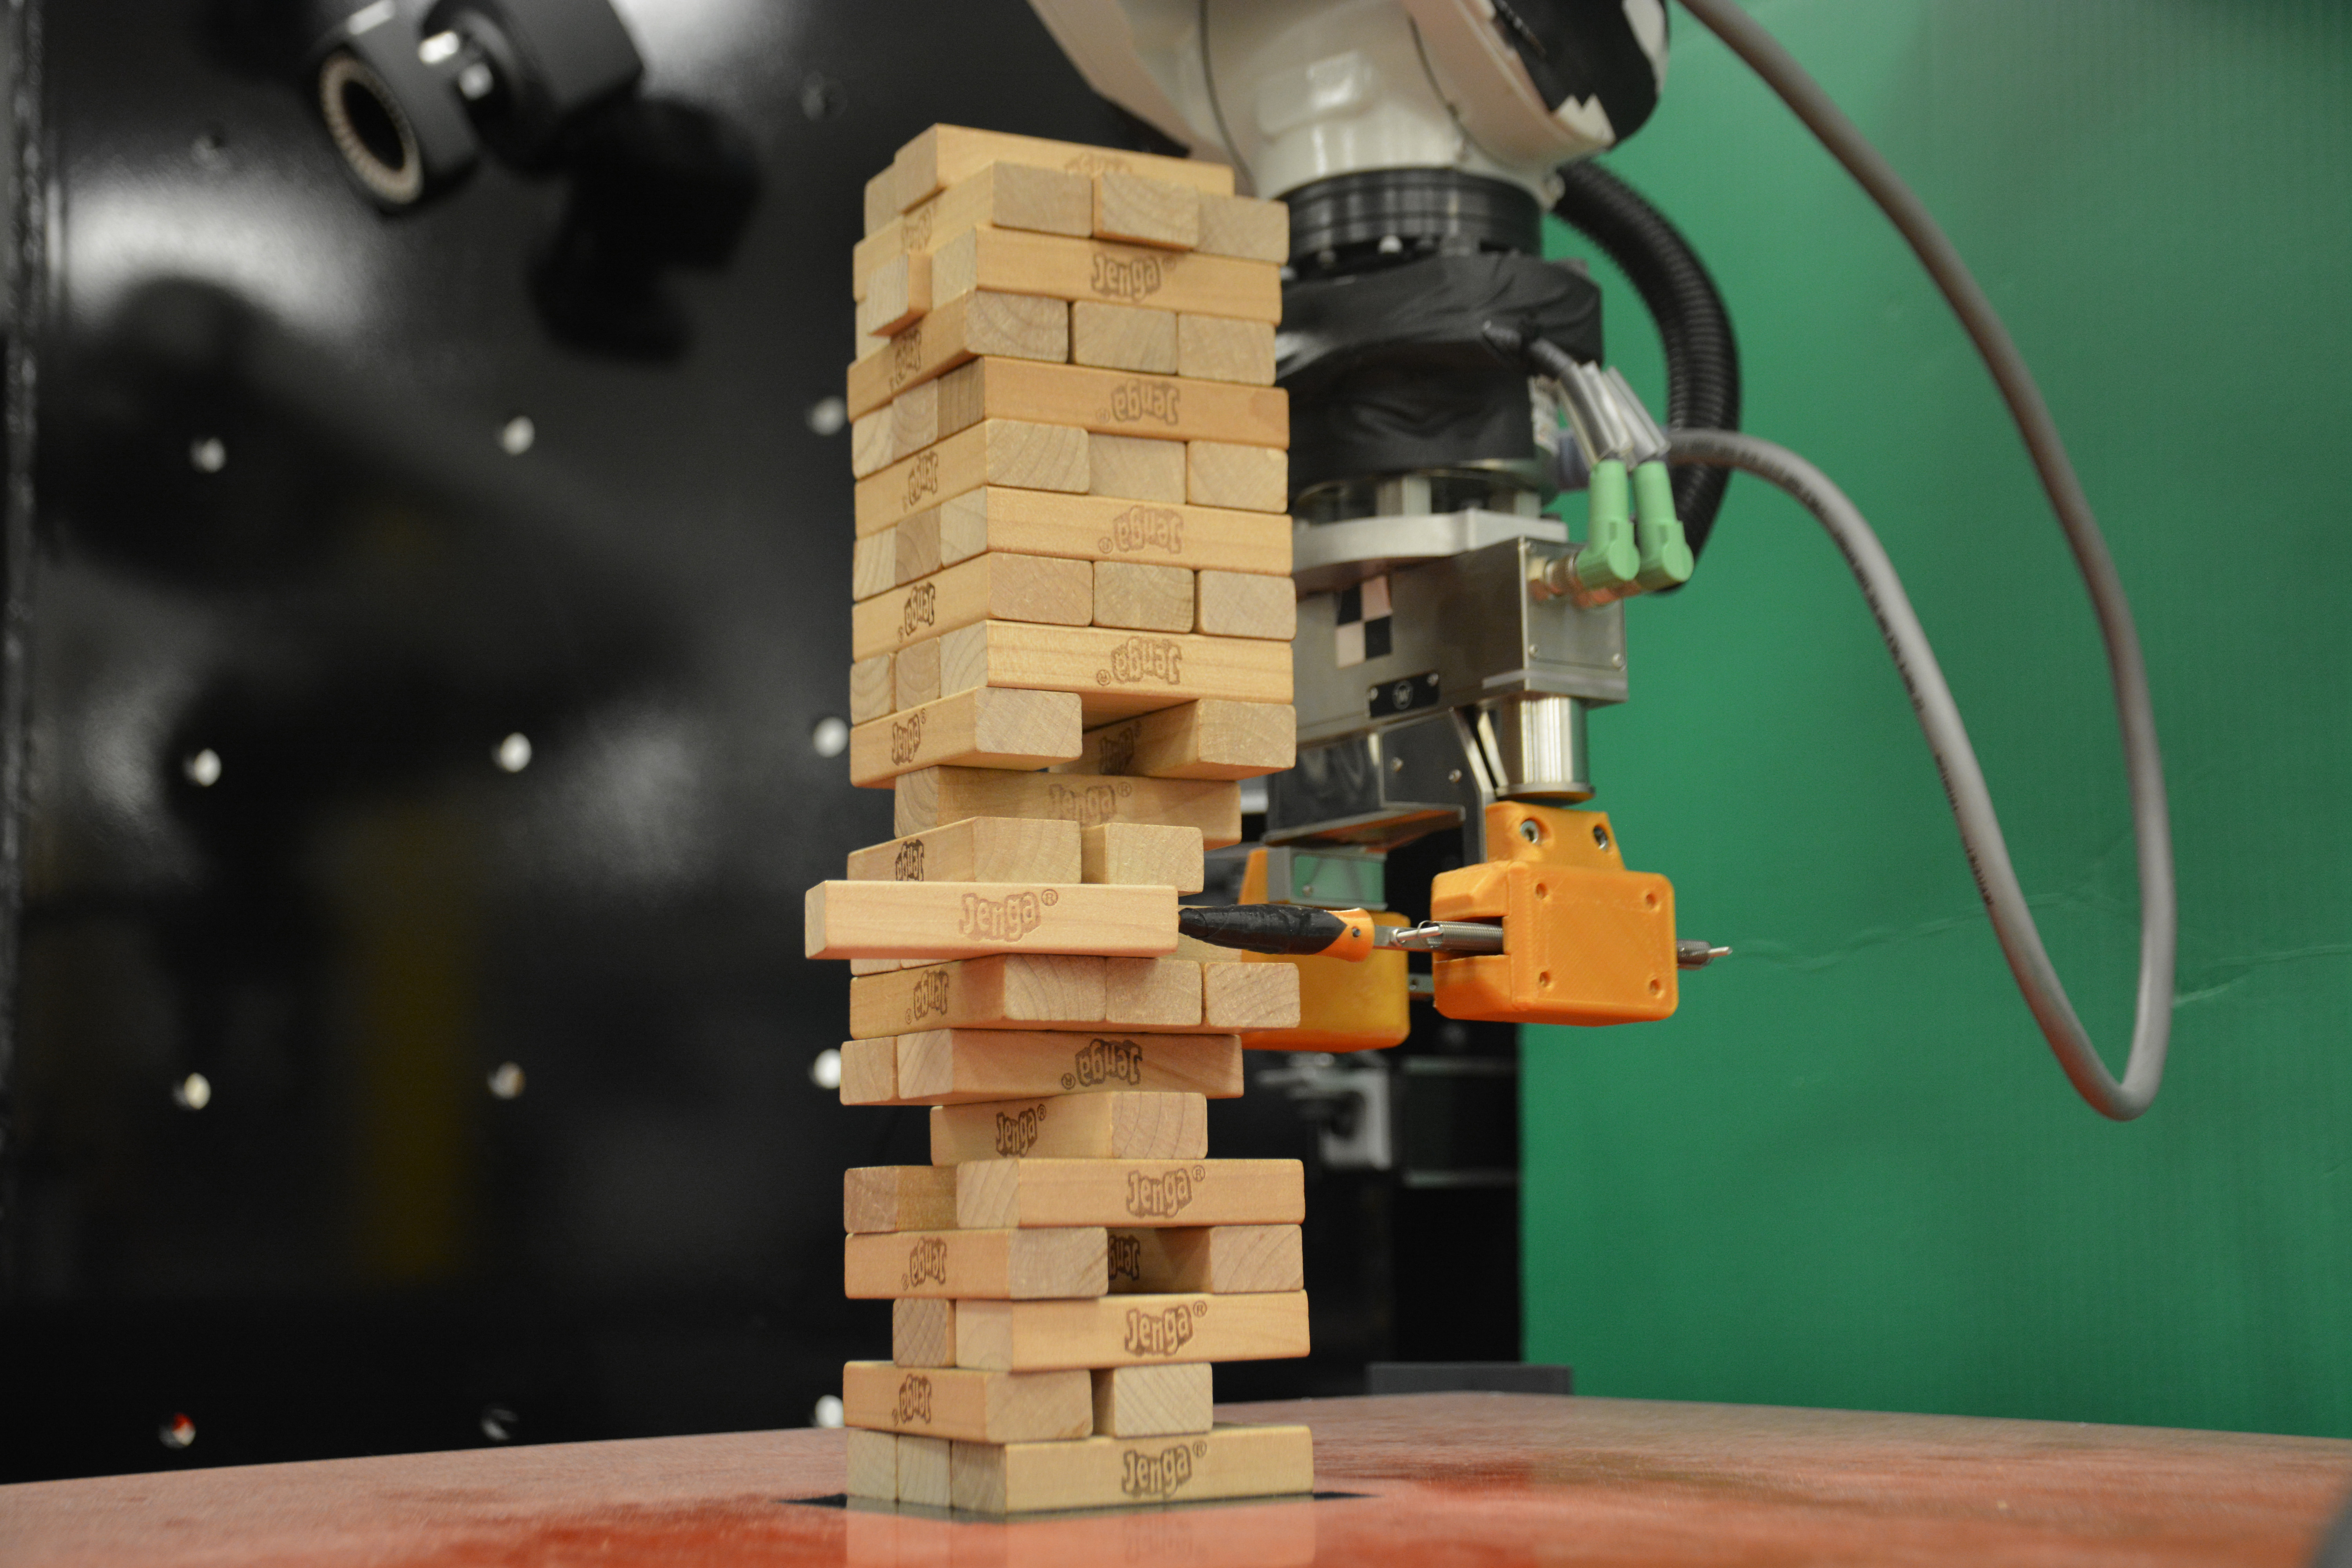 A robot designed by Carnegie Mellon alumnus Alberto Rodriguez and his team slowly pokes a wooden Jenga block out of a tower. Unlike traditional machine learning schemes, this robot takes careful visual and tactile measurements to model the behavior of Jenga blocks continuously, which has broad applications in manufacturing. (credit: Courtesy of the researchers via Massachusetts Institute of Technology)